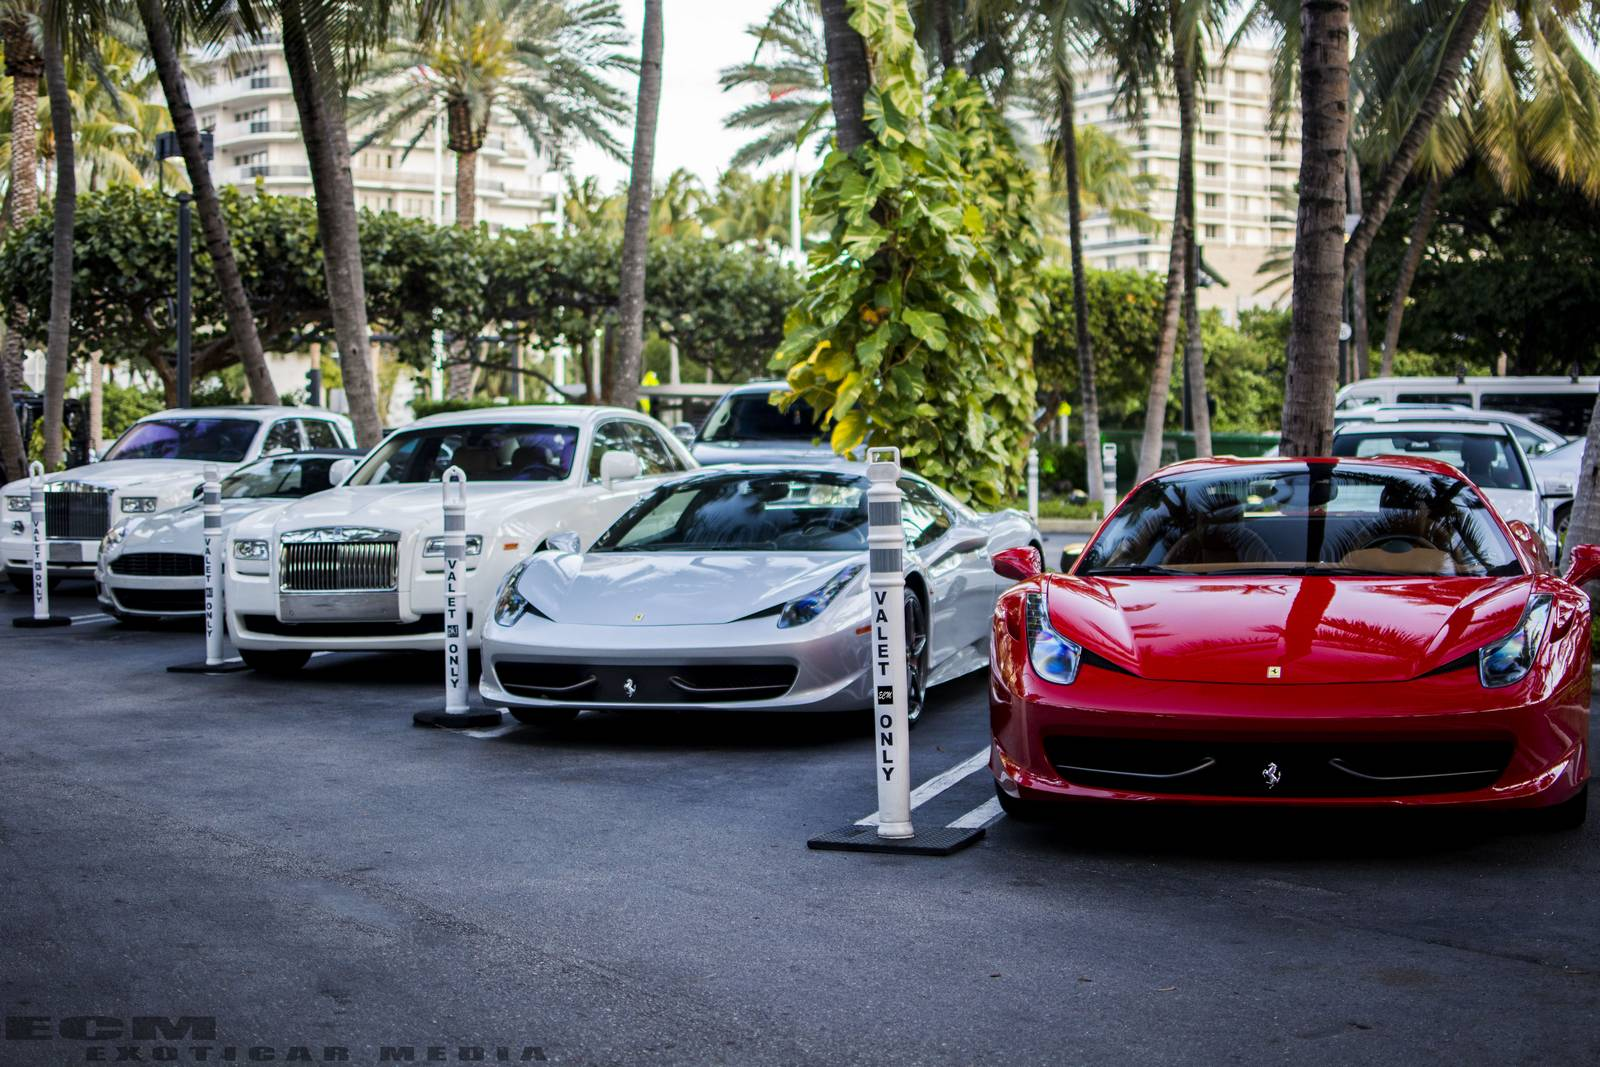 Cars For Sale Miami Beach: Spotting Supercars In Miami: Bal Harbour To South Beach